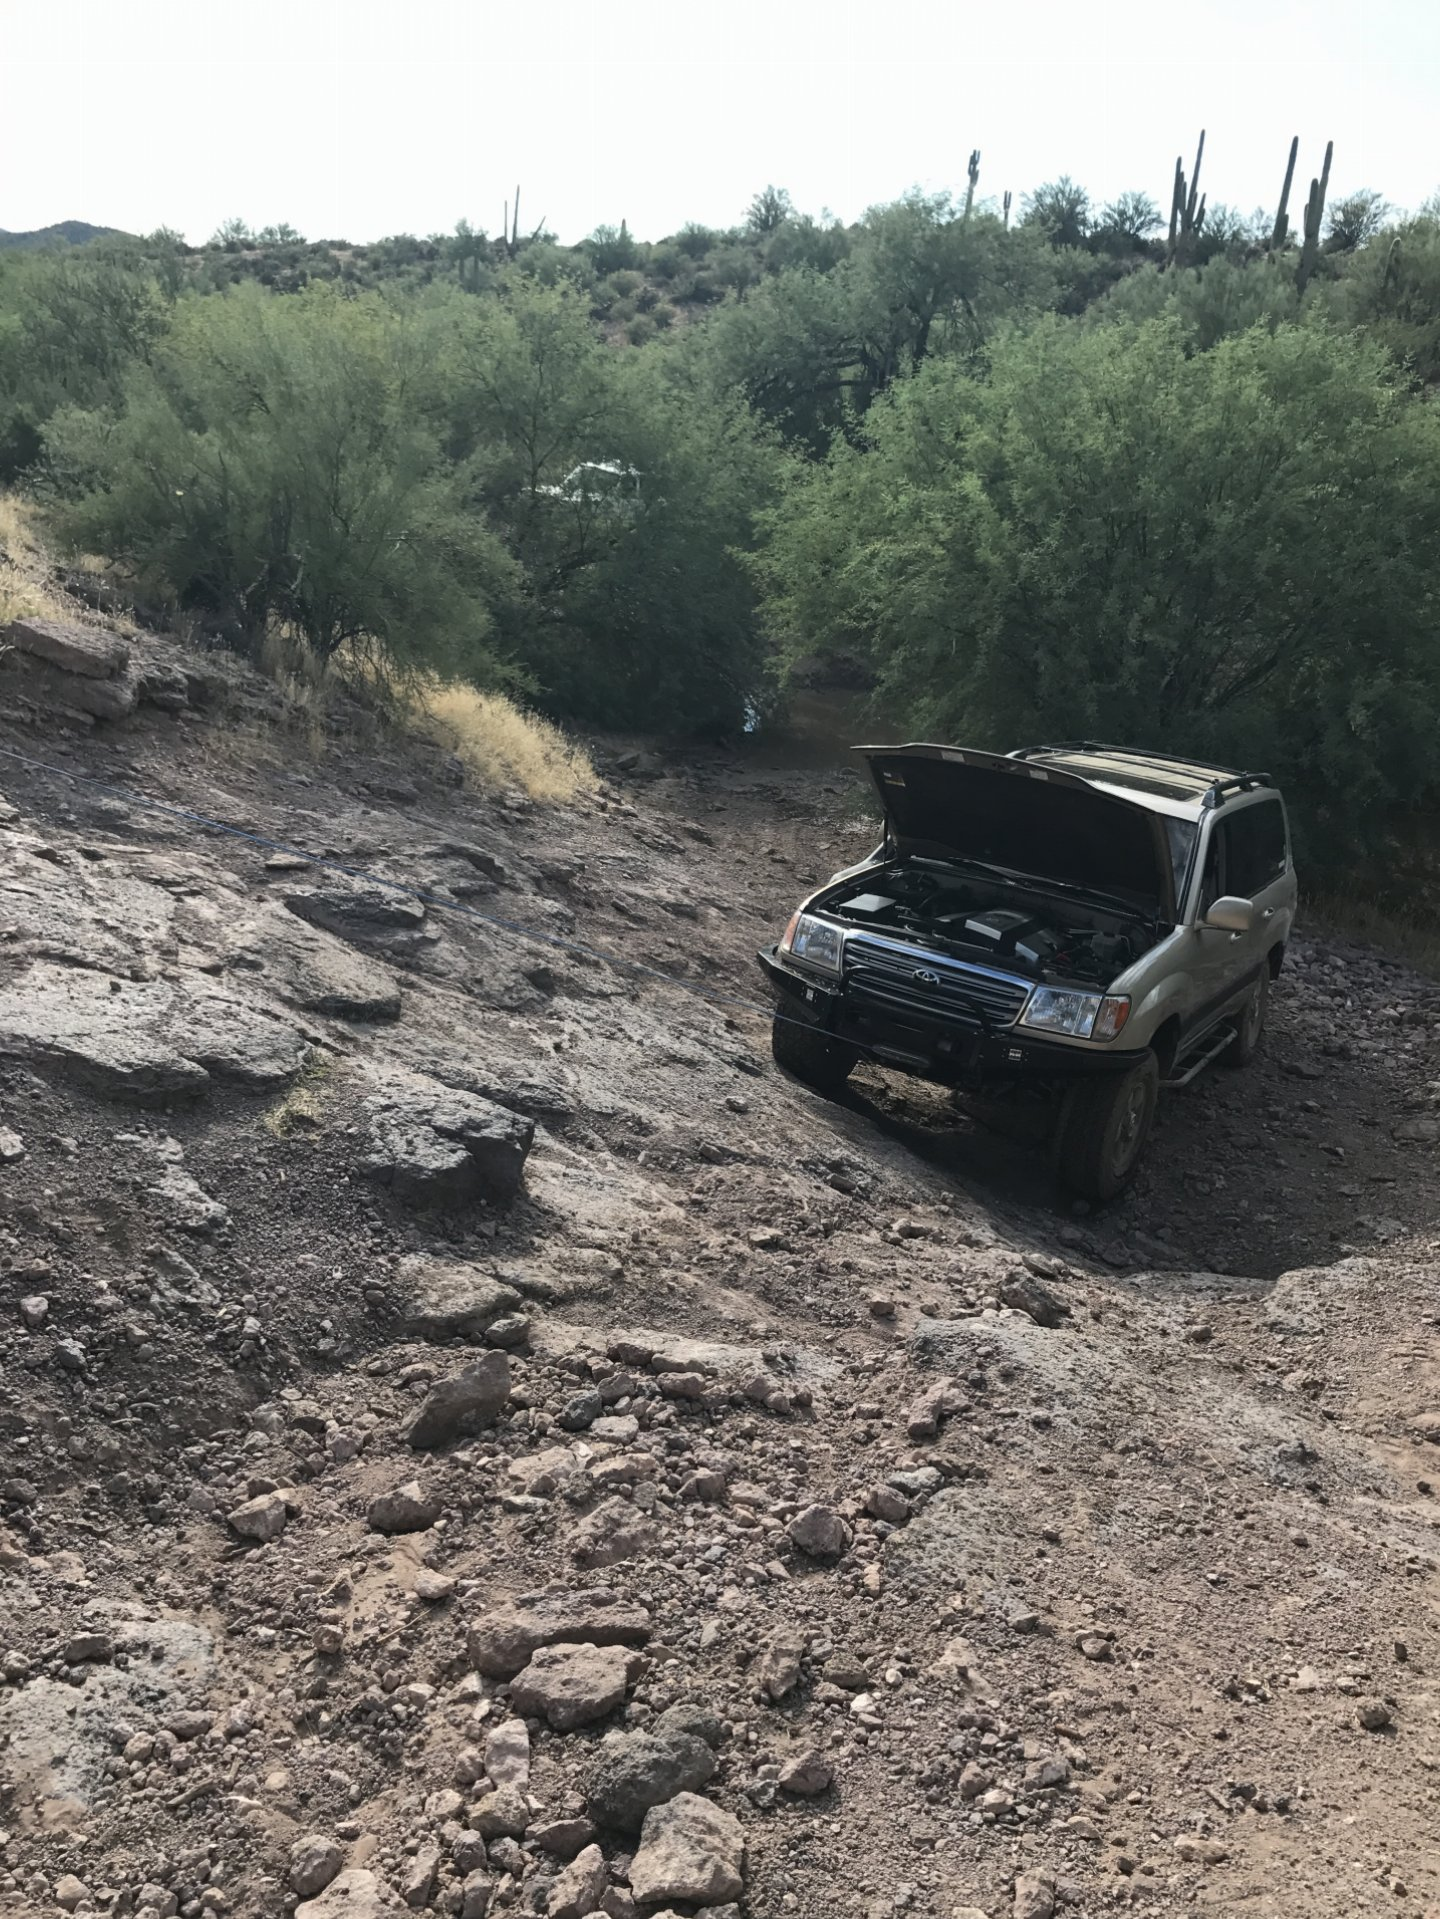 What did you do to your Land Cruiser Toyota Lexus 4X4 this week